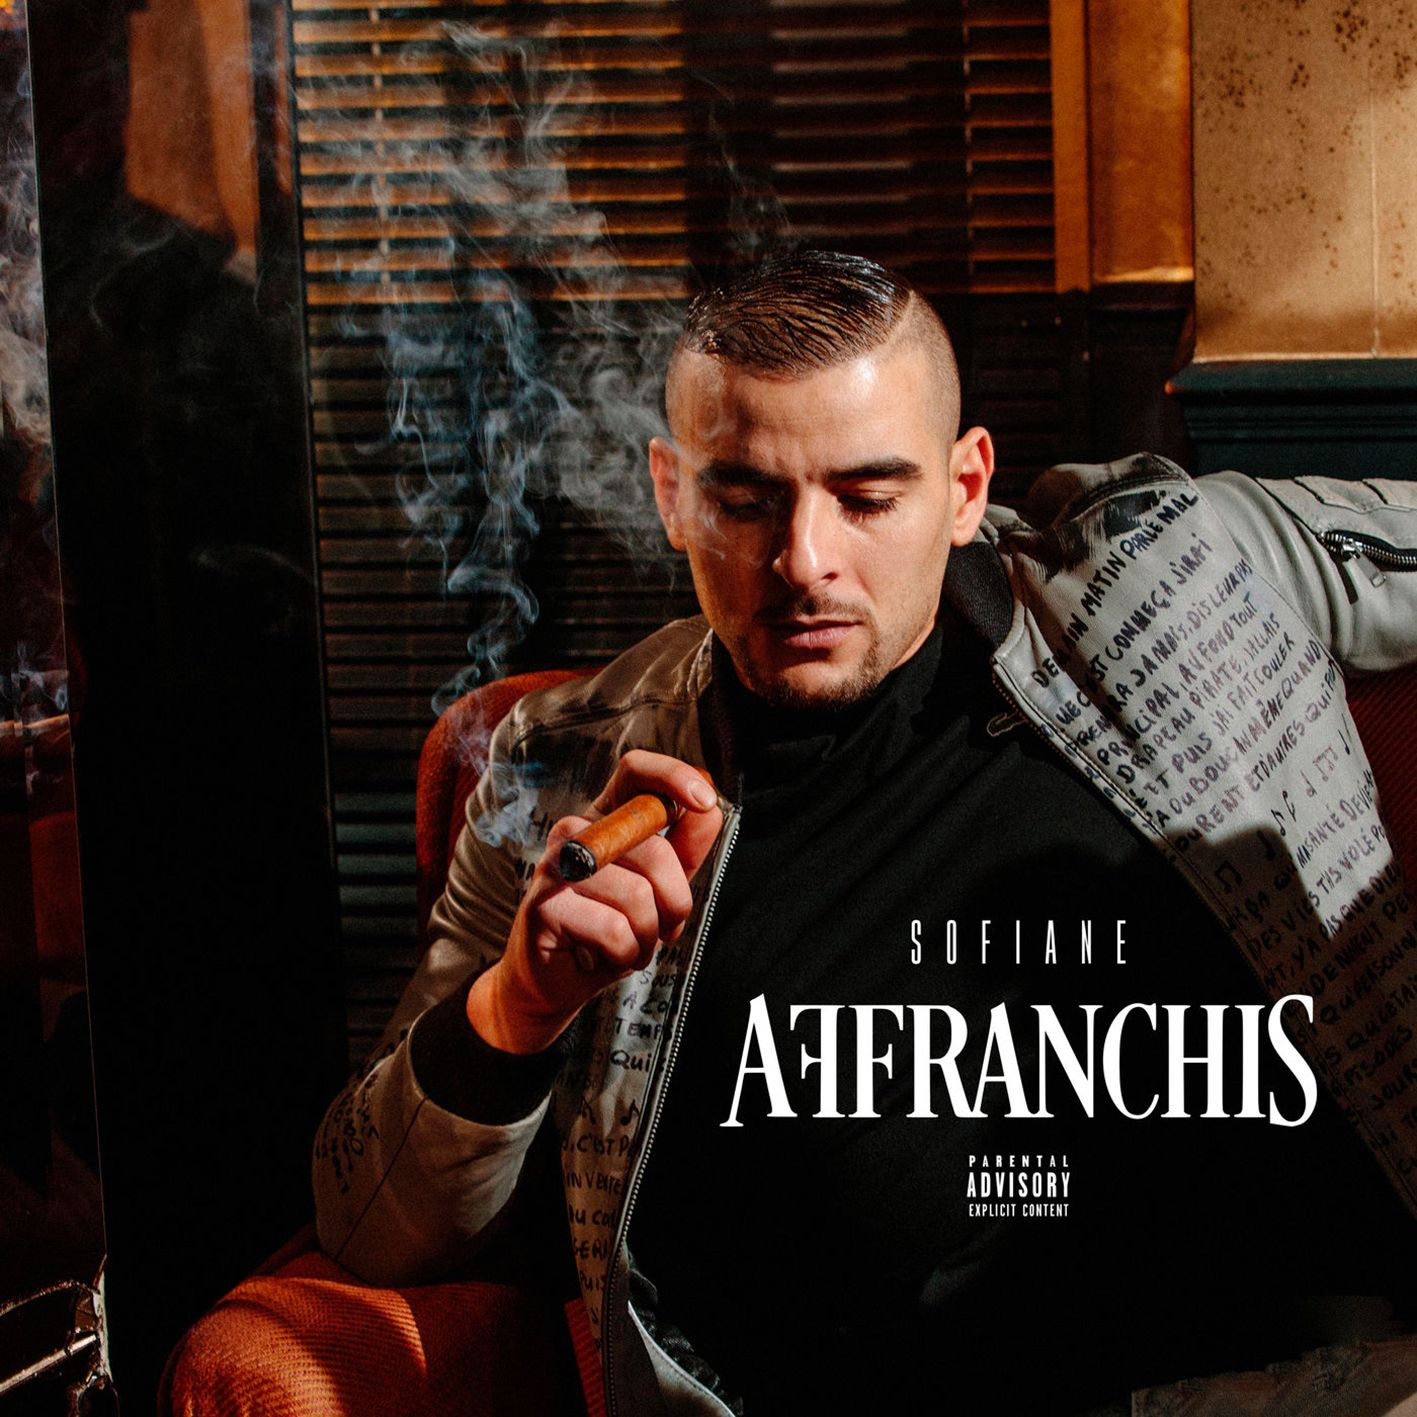 Sofiane - Affranchis album cover